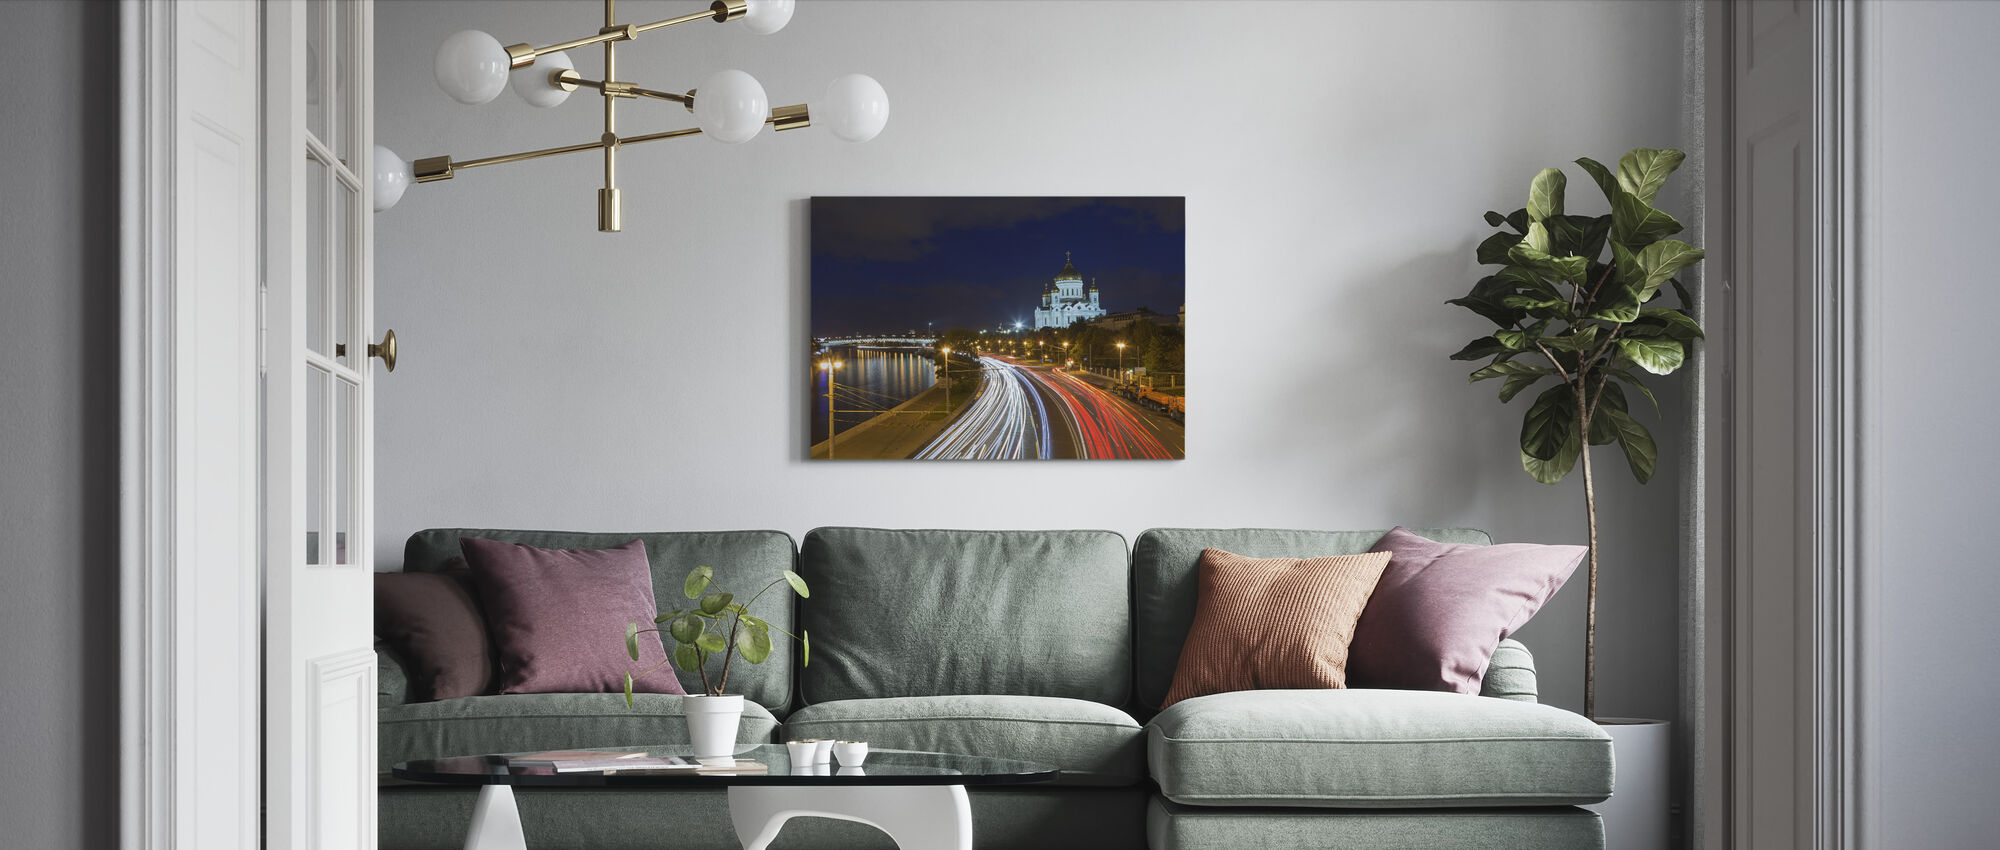 Moscow Traffic at Night - Canvas print - Living Room